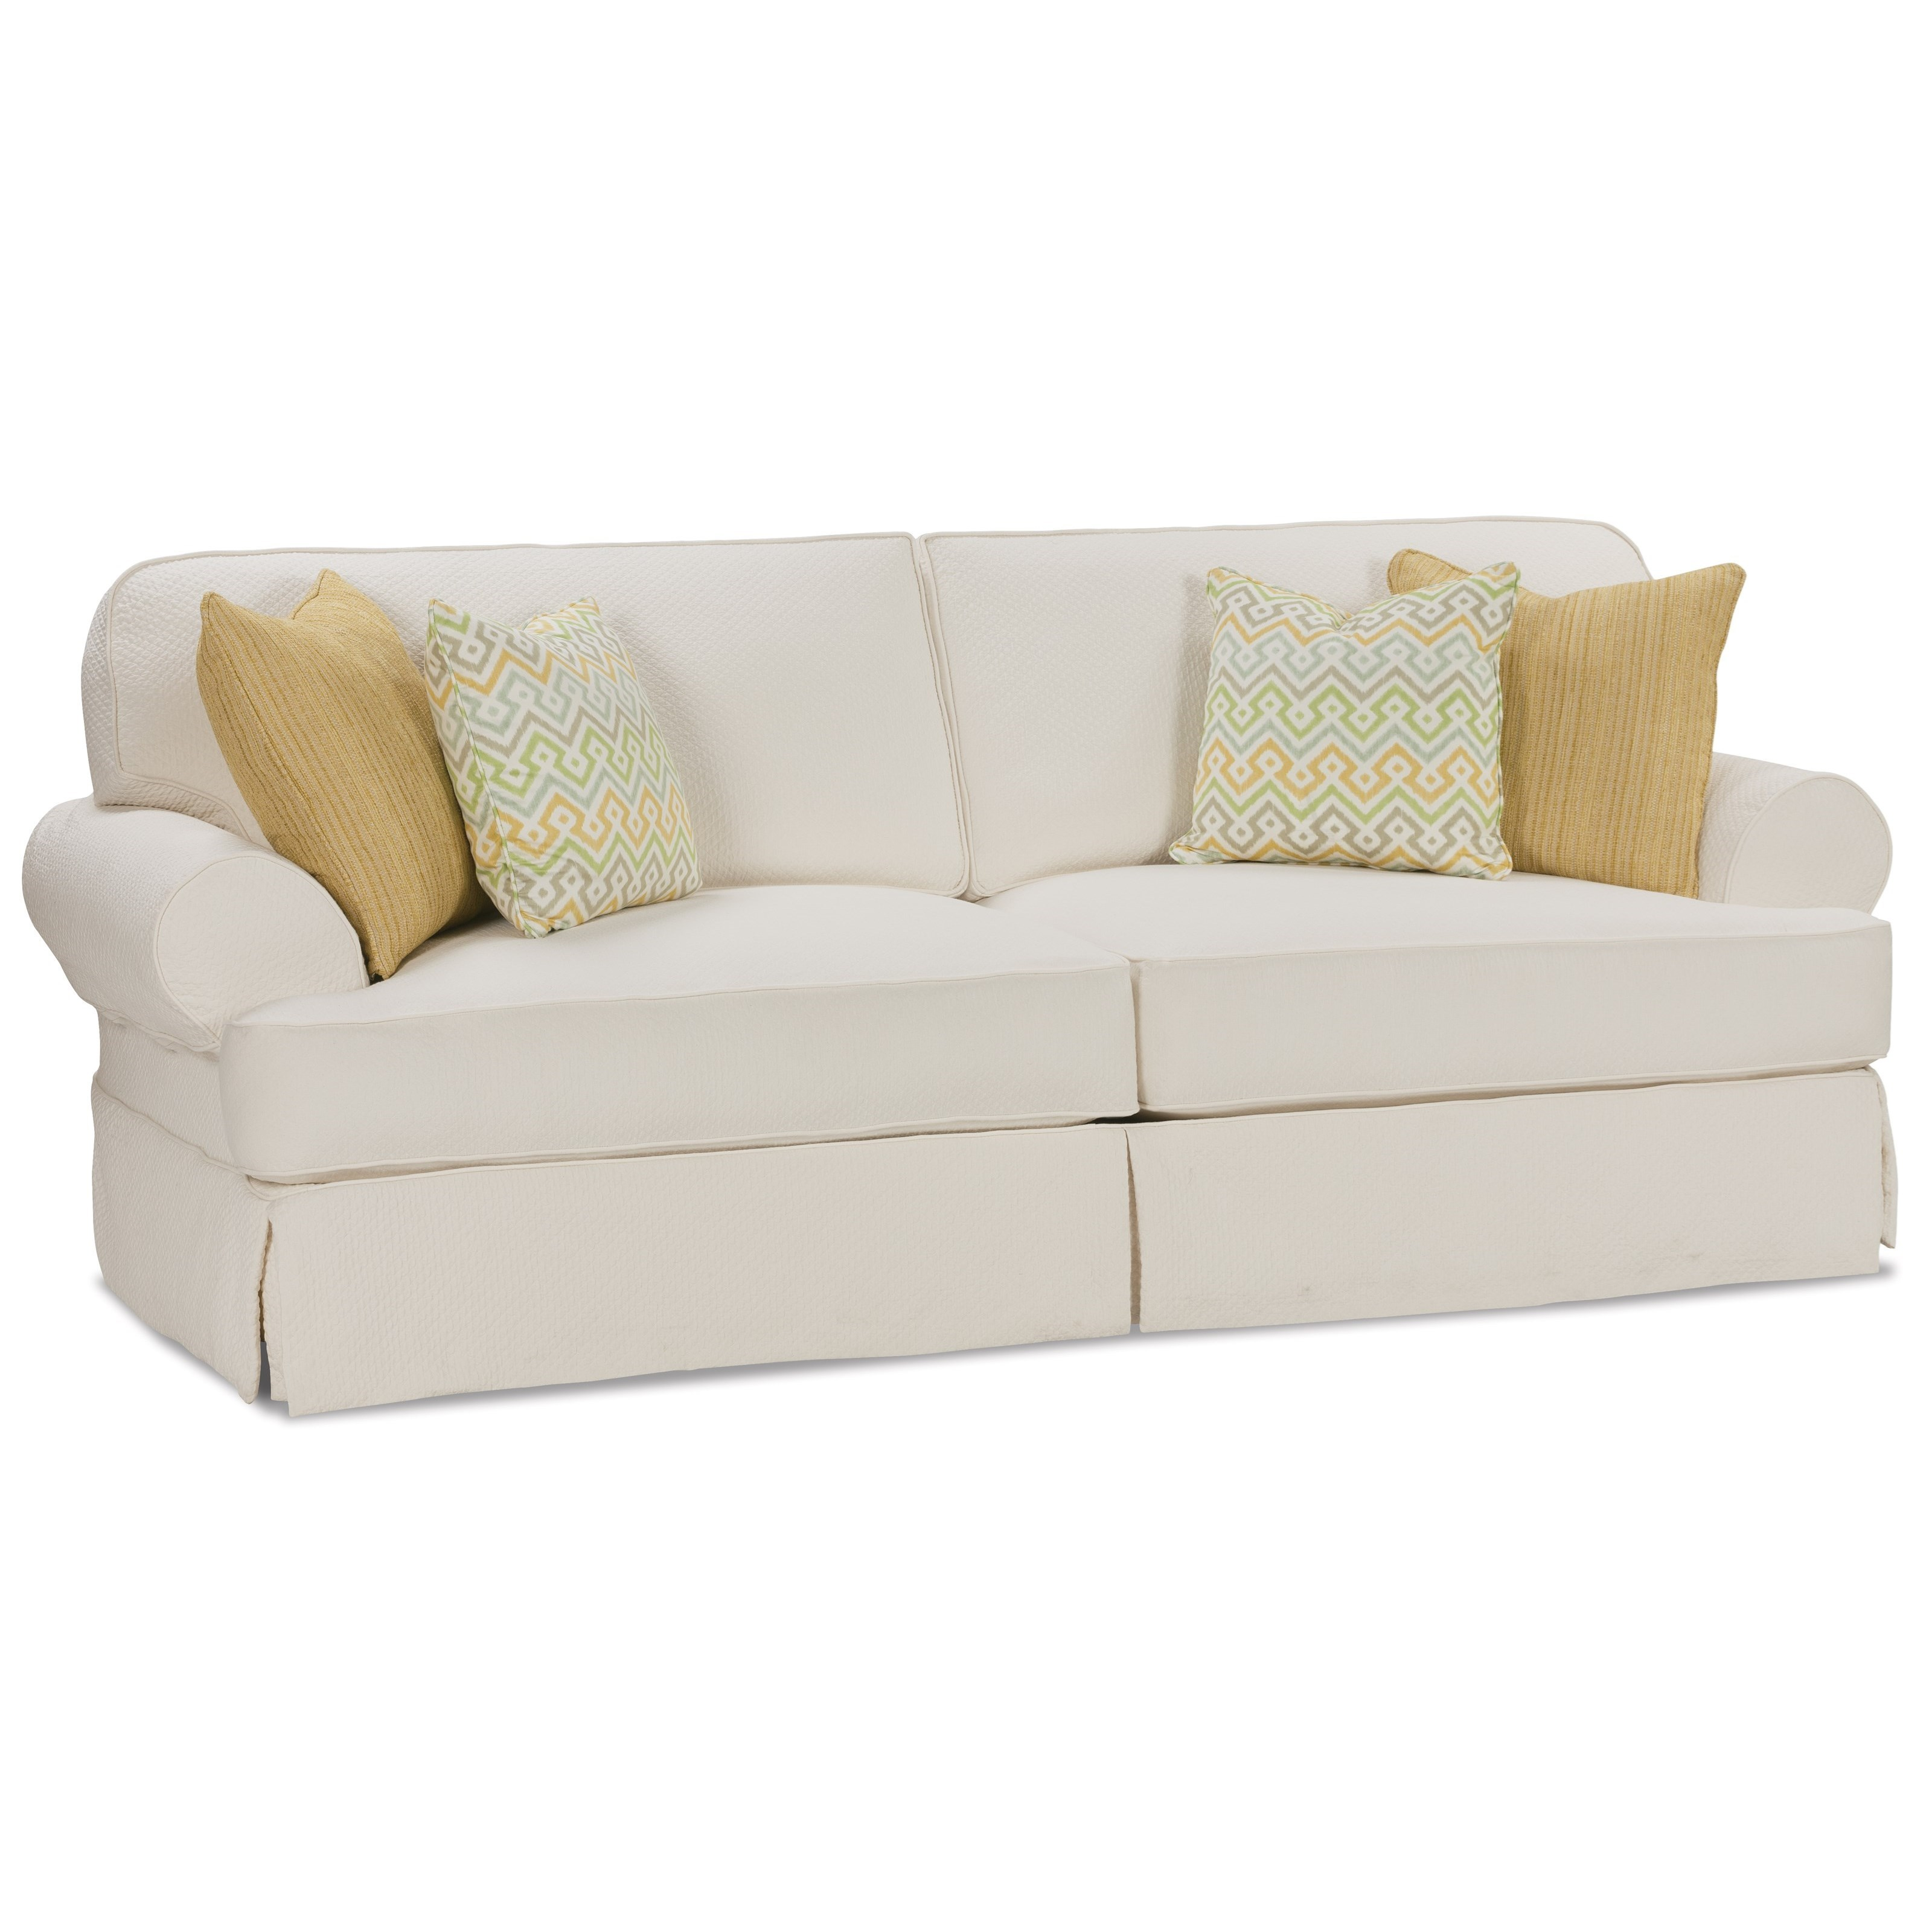 Addison  Traditional 2 Seat Sofa With Slipcover by Rowe at Steger's Furniture